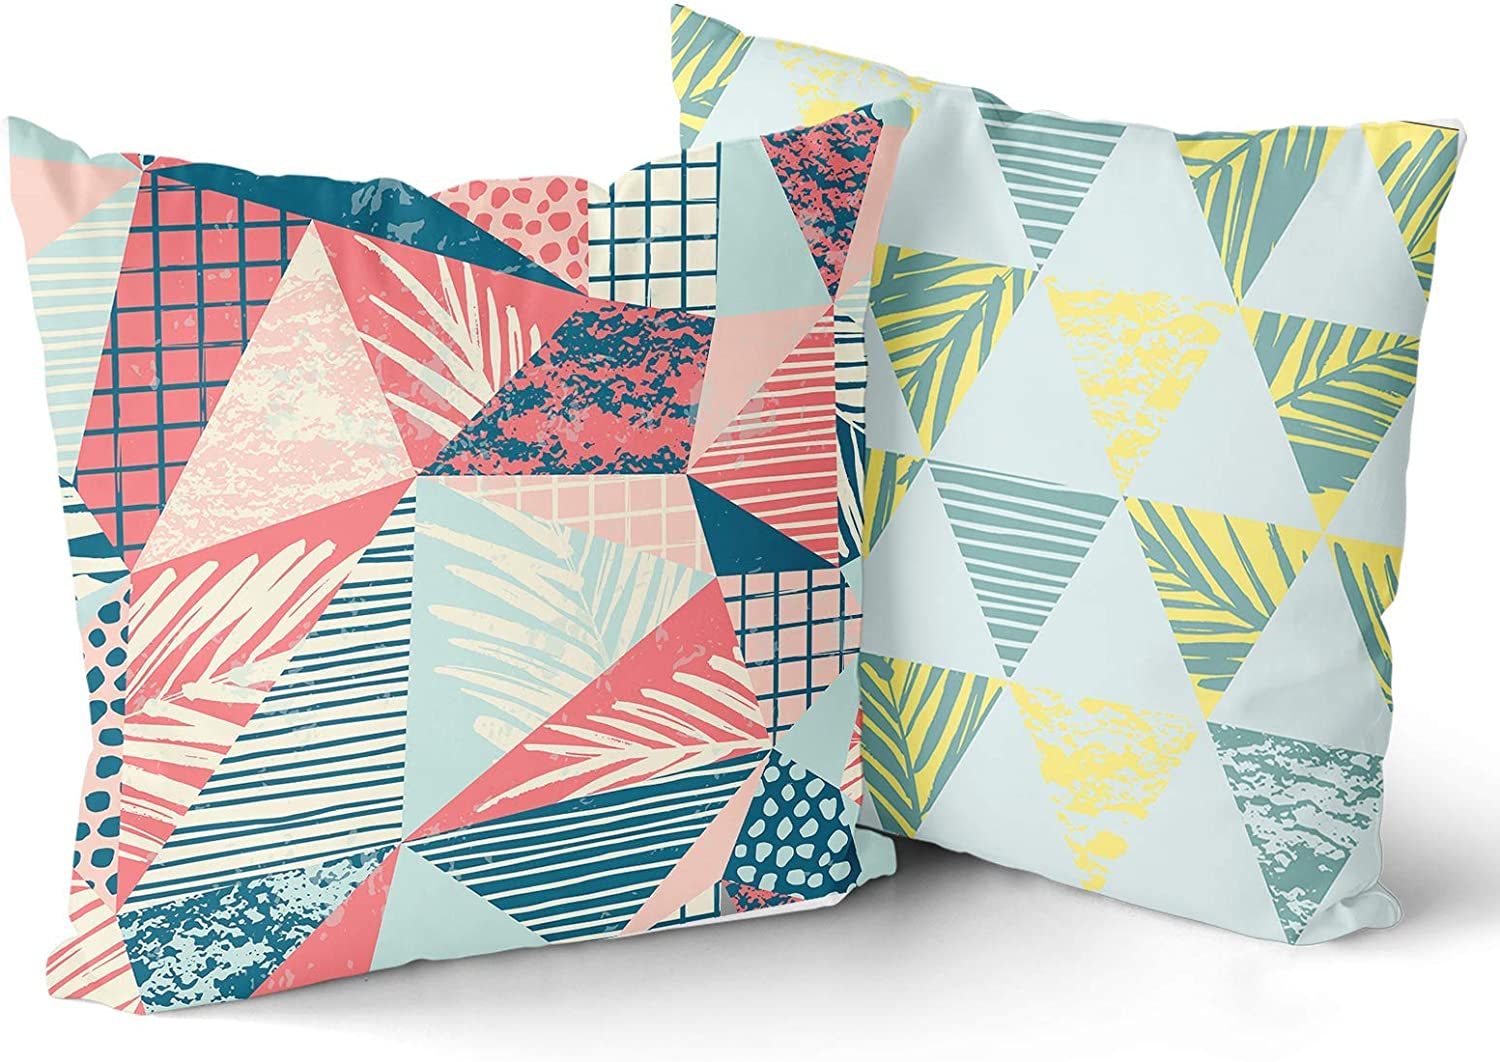 """Multicolor Geometric Throw Pillow Covers Set of 2 Decorative Cotton Triangle Irregular Shape Pillow Cover Beautiful Double-Sided Printing Tropical Leaves Square Pillowcases for Home Sofa 18""""x18"""""""